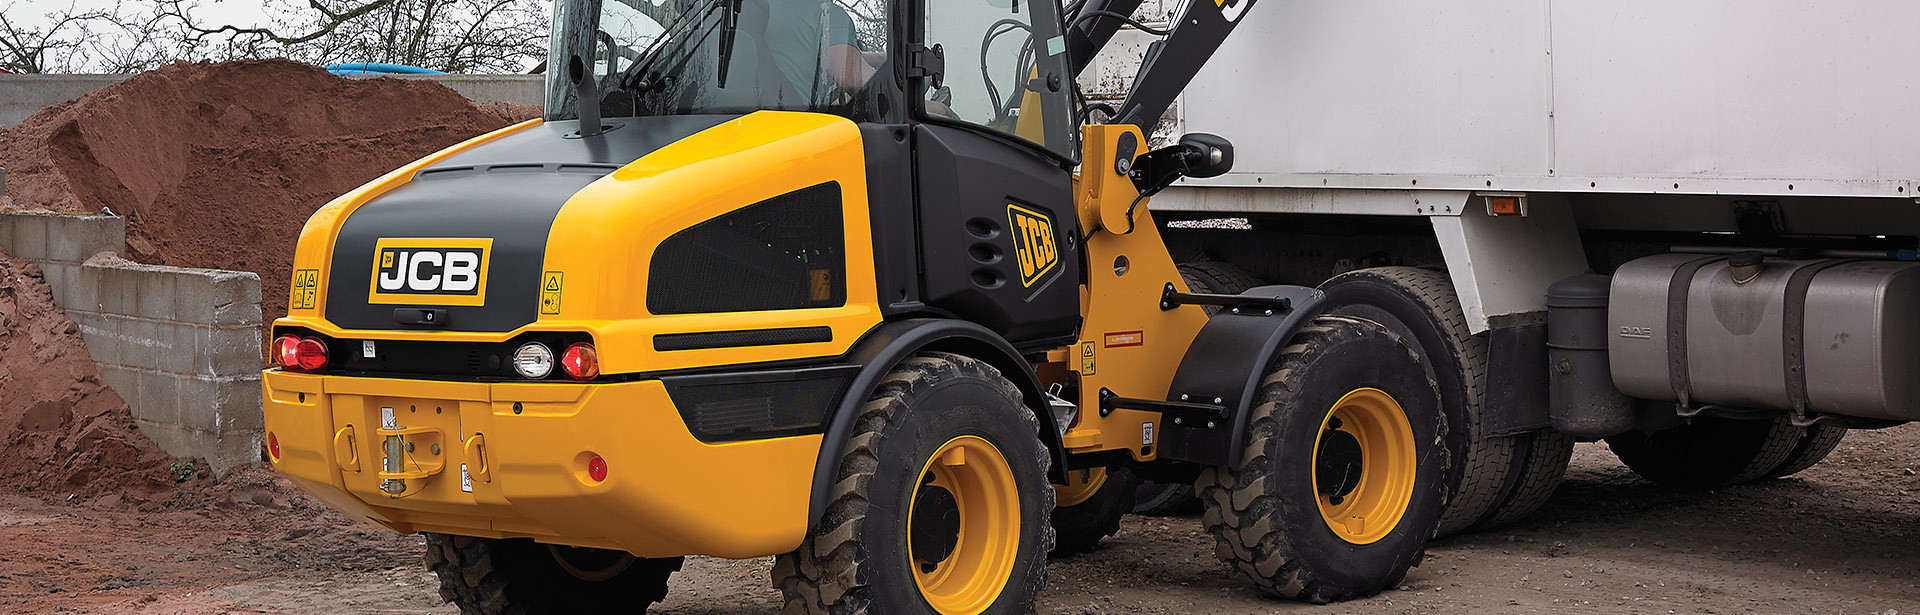 banner-jcb-wheel-loader3.jpg